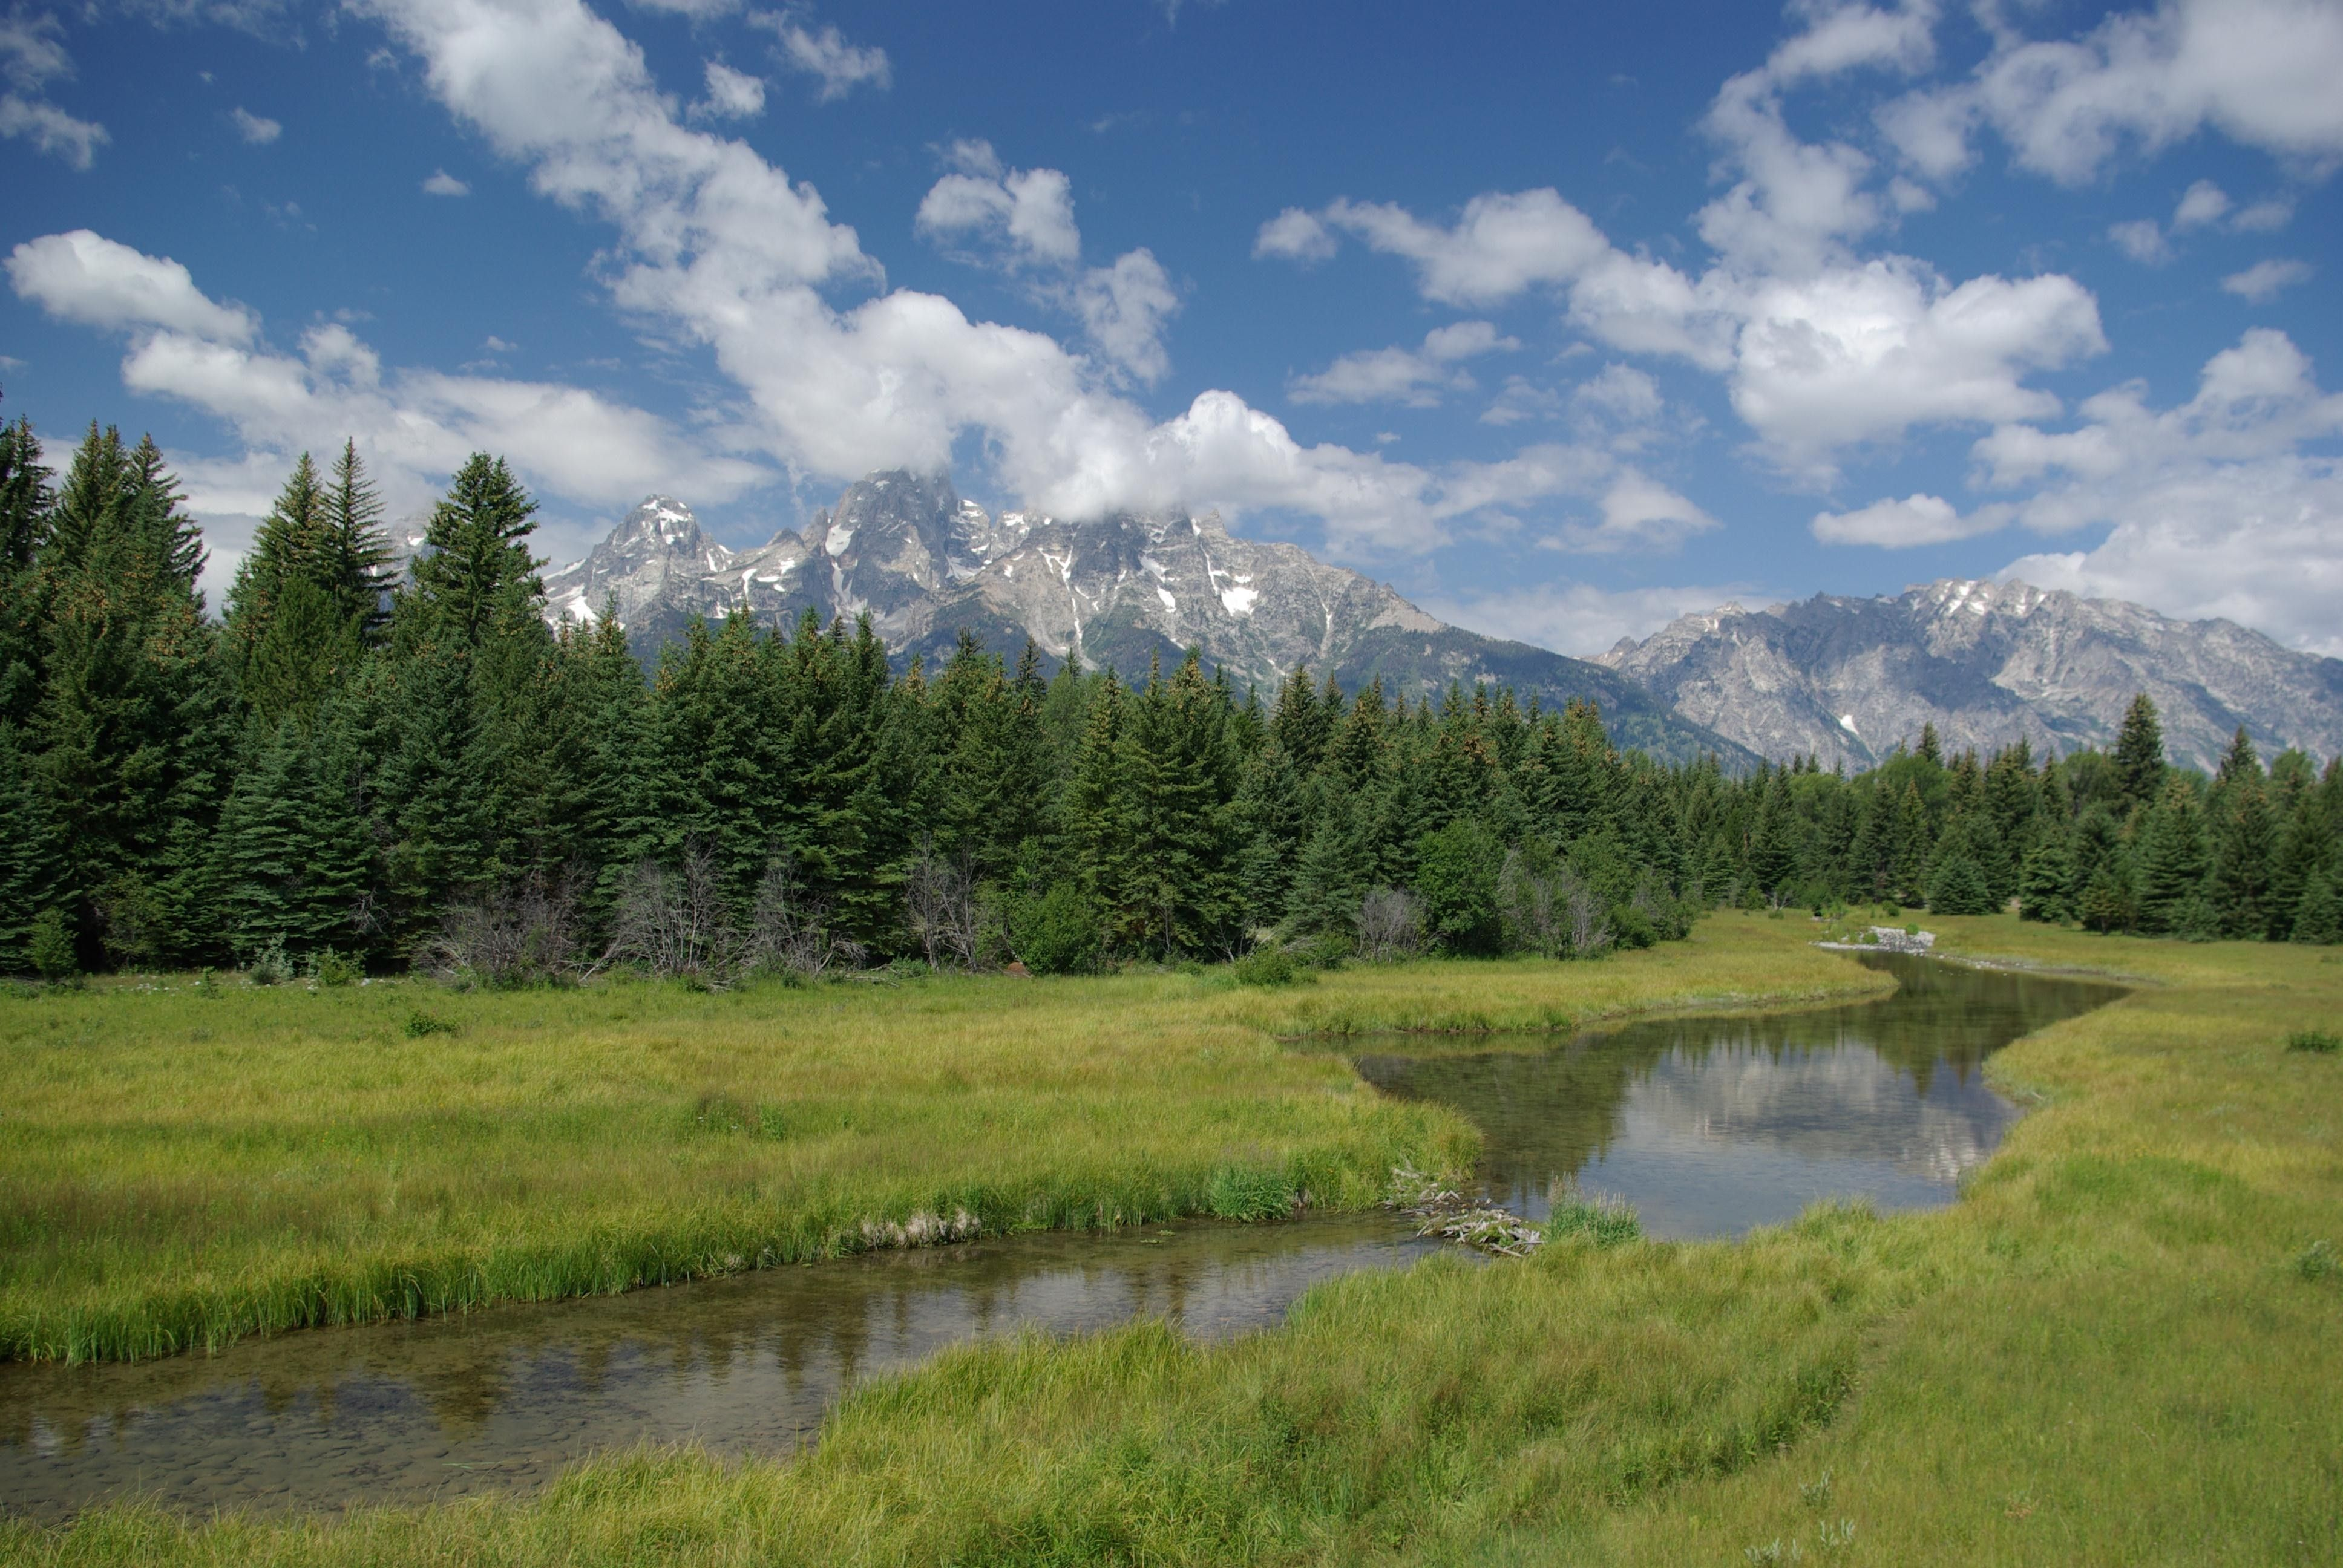 A river runs through Grand Teton National Park with the mountain range in the background.